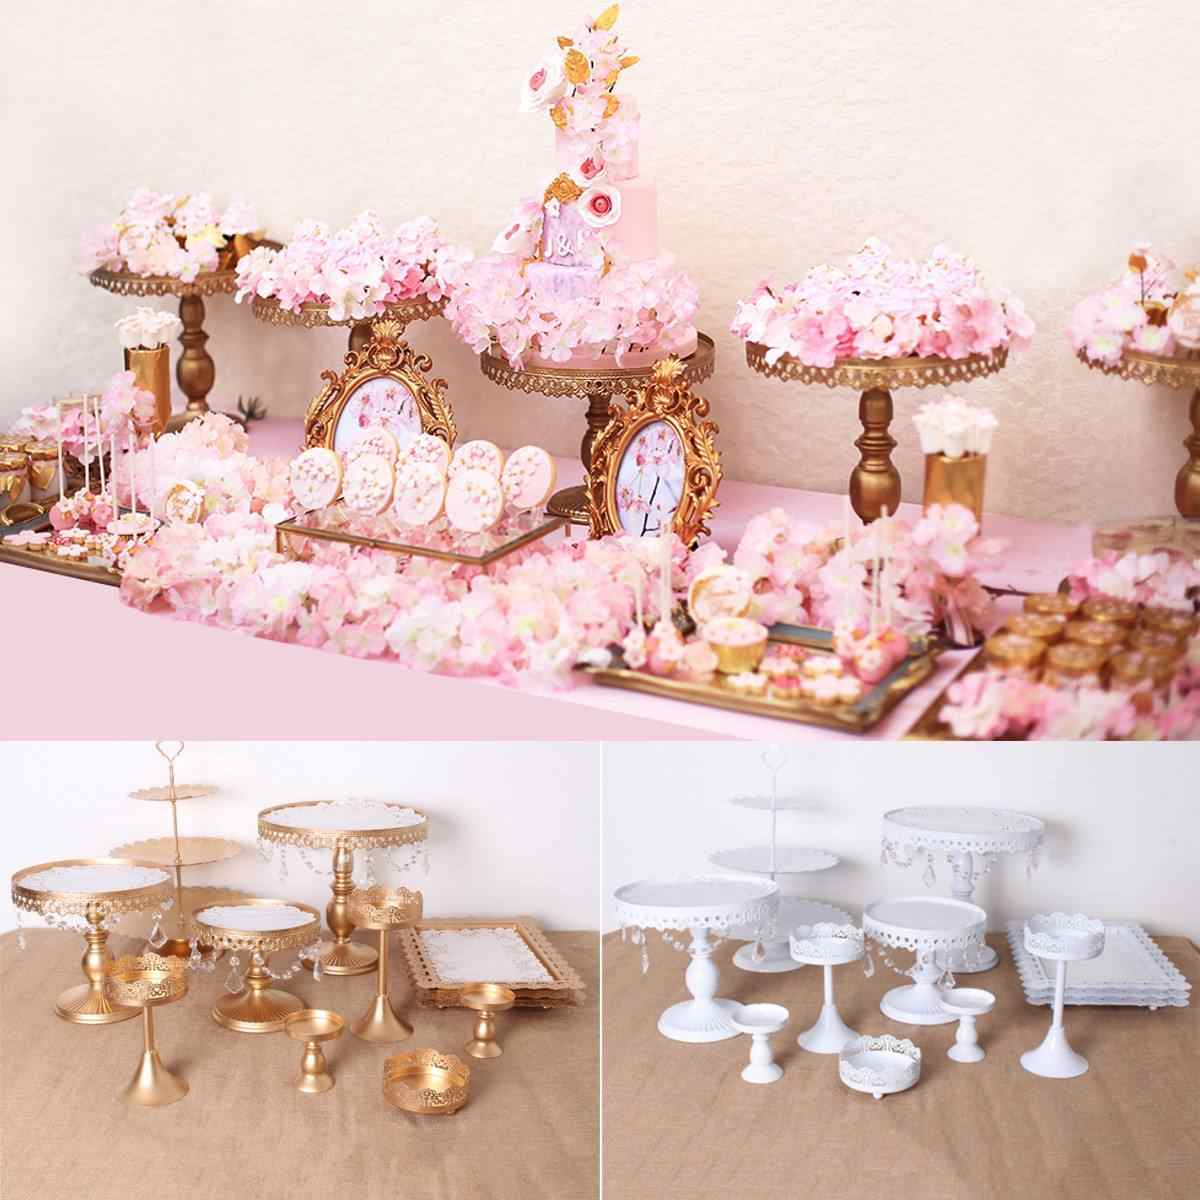 12PCS Gold White Cake Stand Set Round Metal Crystal Cupcake Dessert Display Tray Rack Wedding Decoration Kitchen Cake Tools